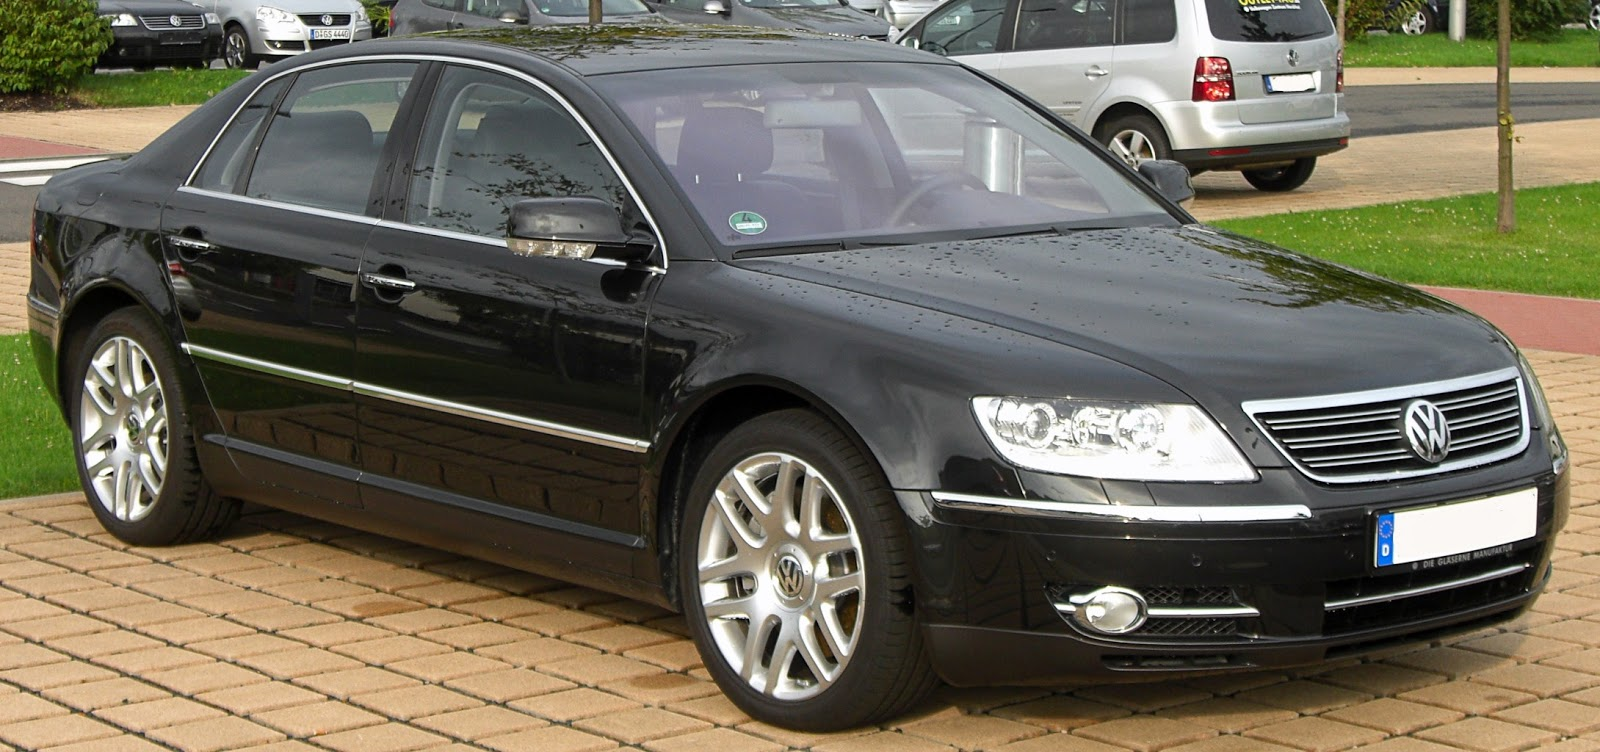 volkswagen announce 500 km awd electric phaeton tesla. Black Bedroom Furniture Sets. Home Design Ideas